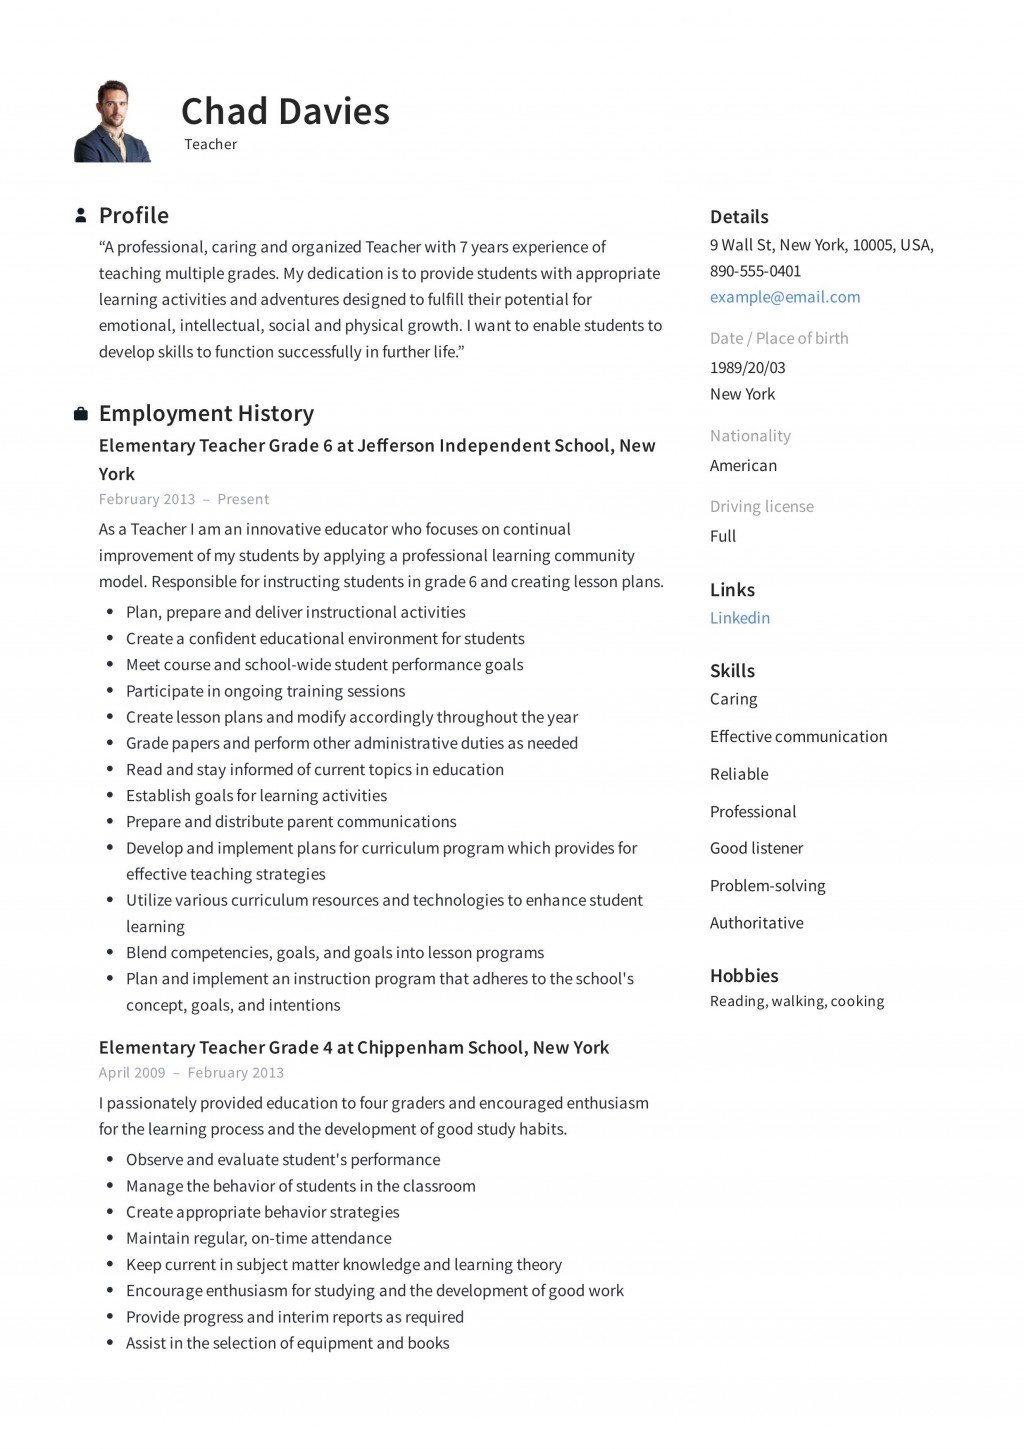 001 Magnificent Resume Template For Teaching High Resolution  Cv Job Application Assistant In PakistanLarge